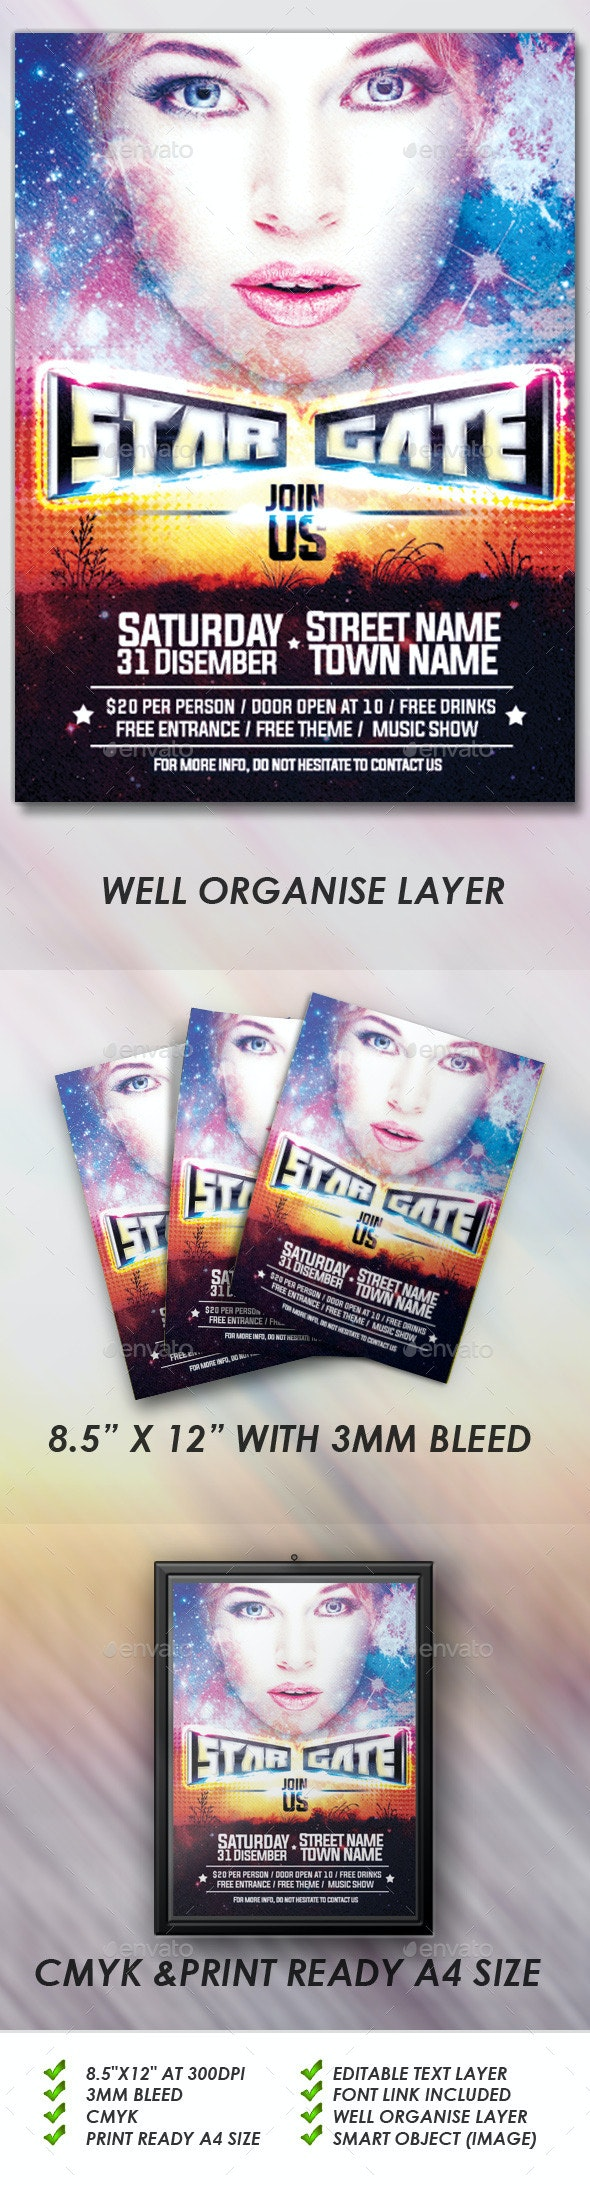 Star Gate Flyers - Events Flyers